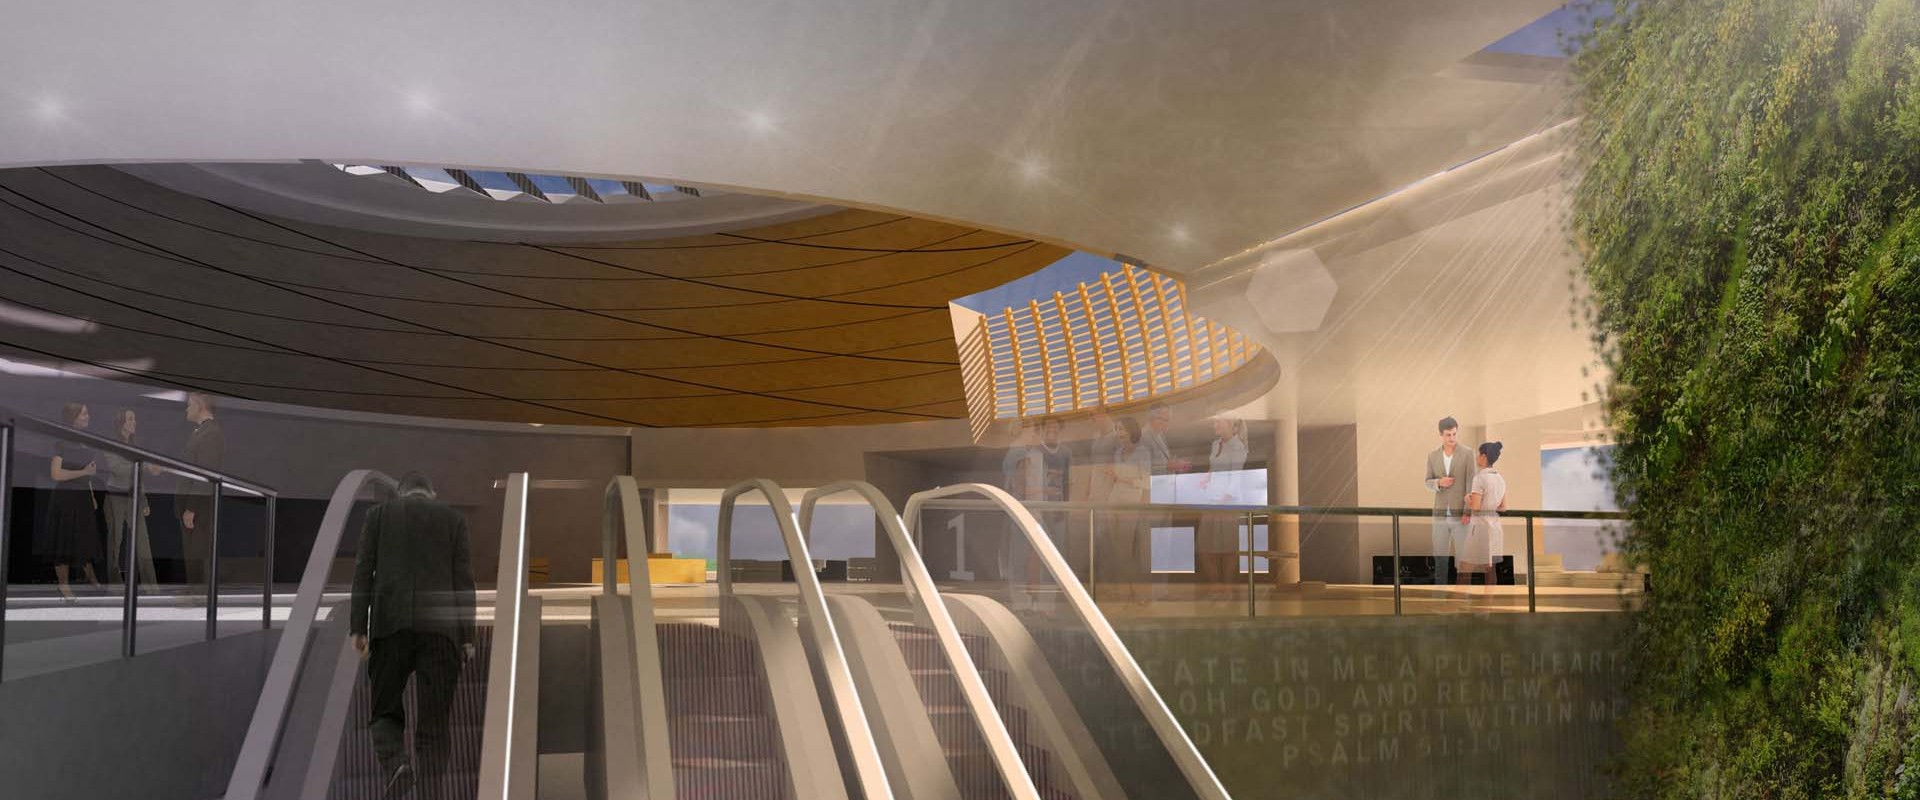 Church Lobby Architectural Rendering